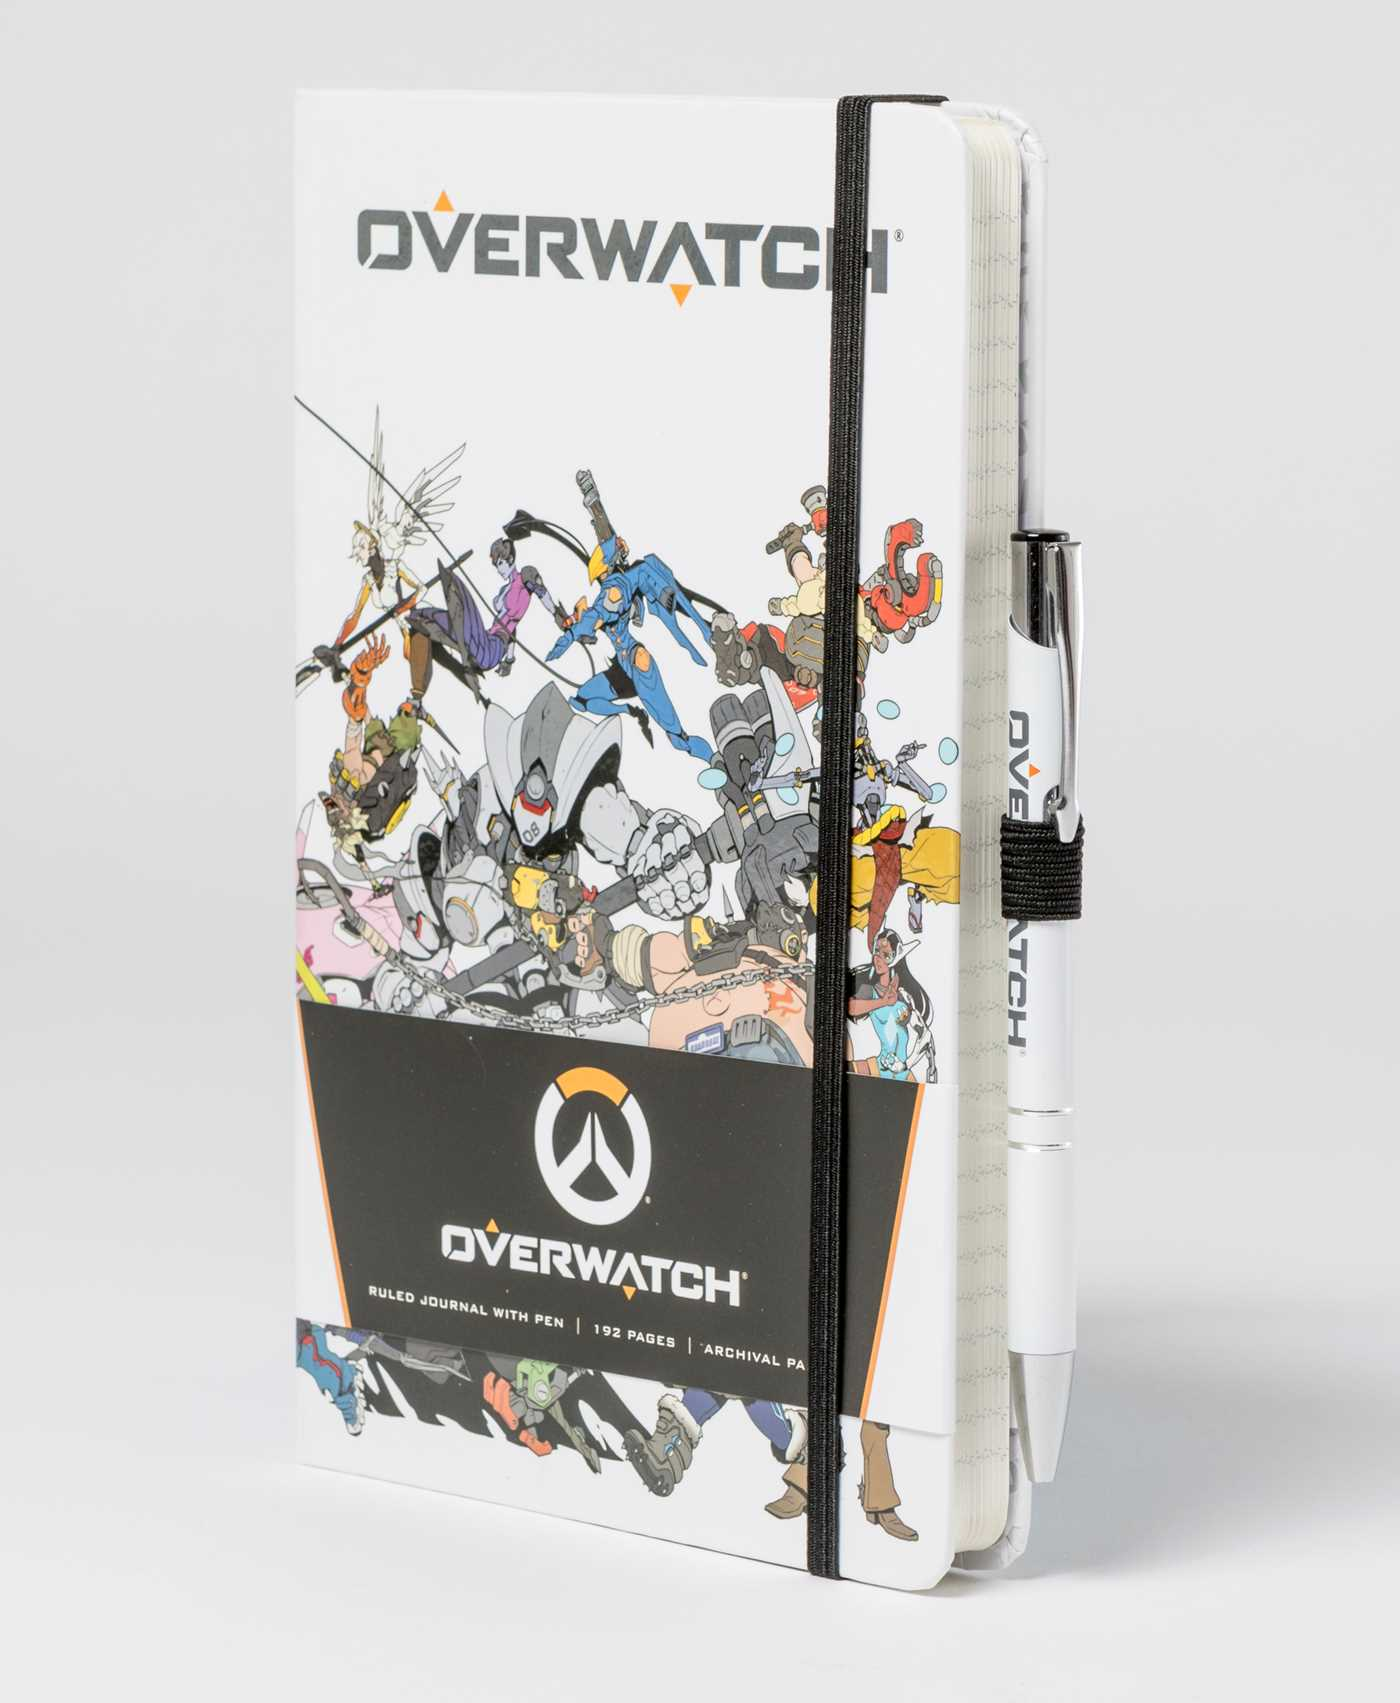 Overwatch hardcover ruled journal with pen 9781683835387 hr